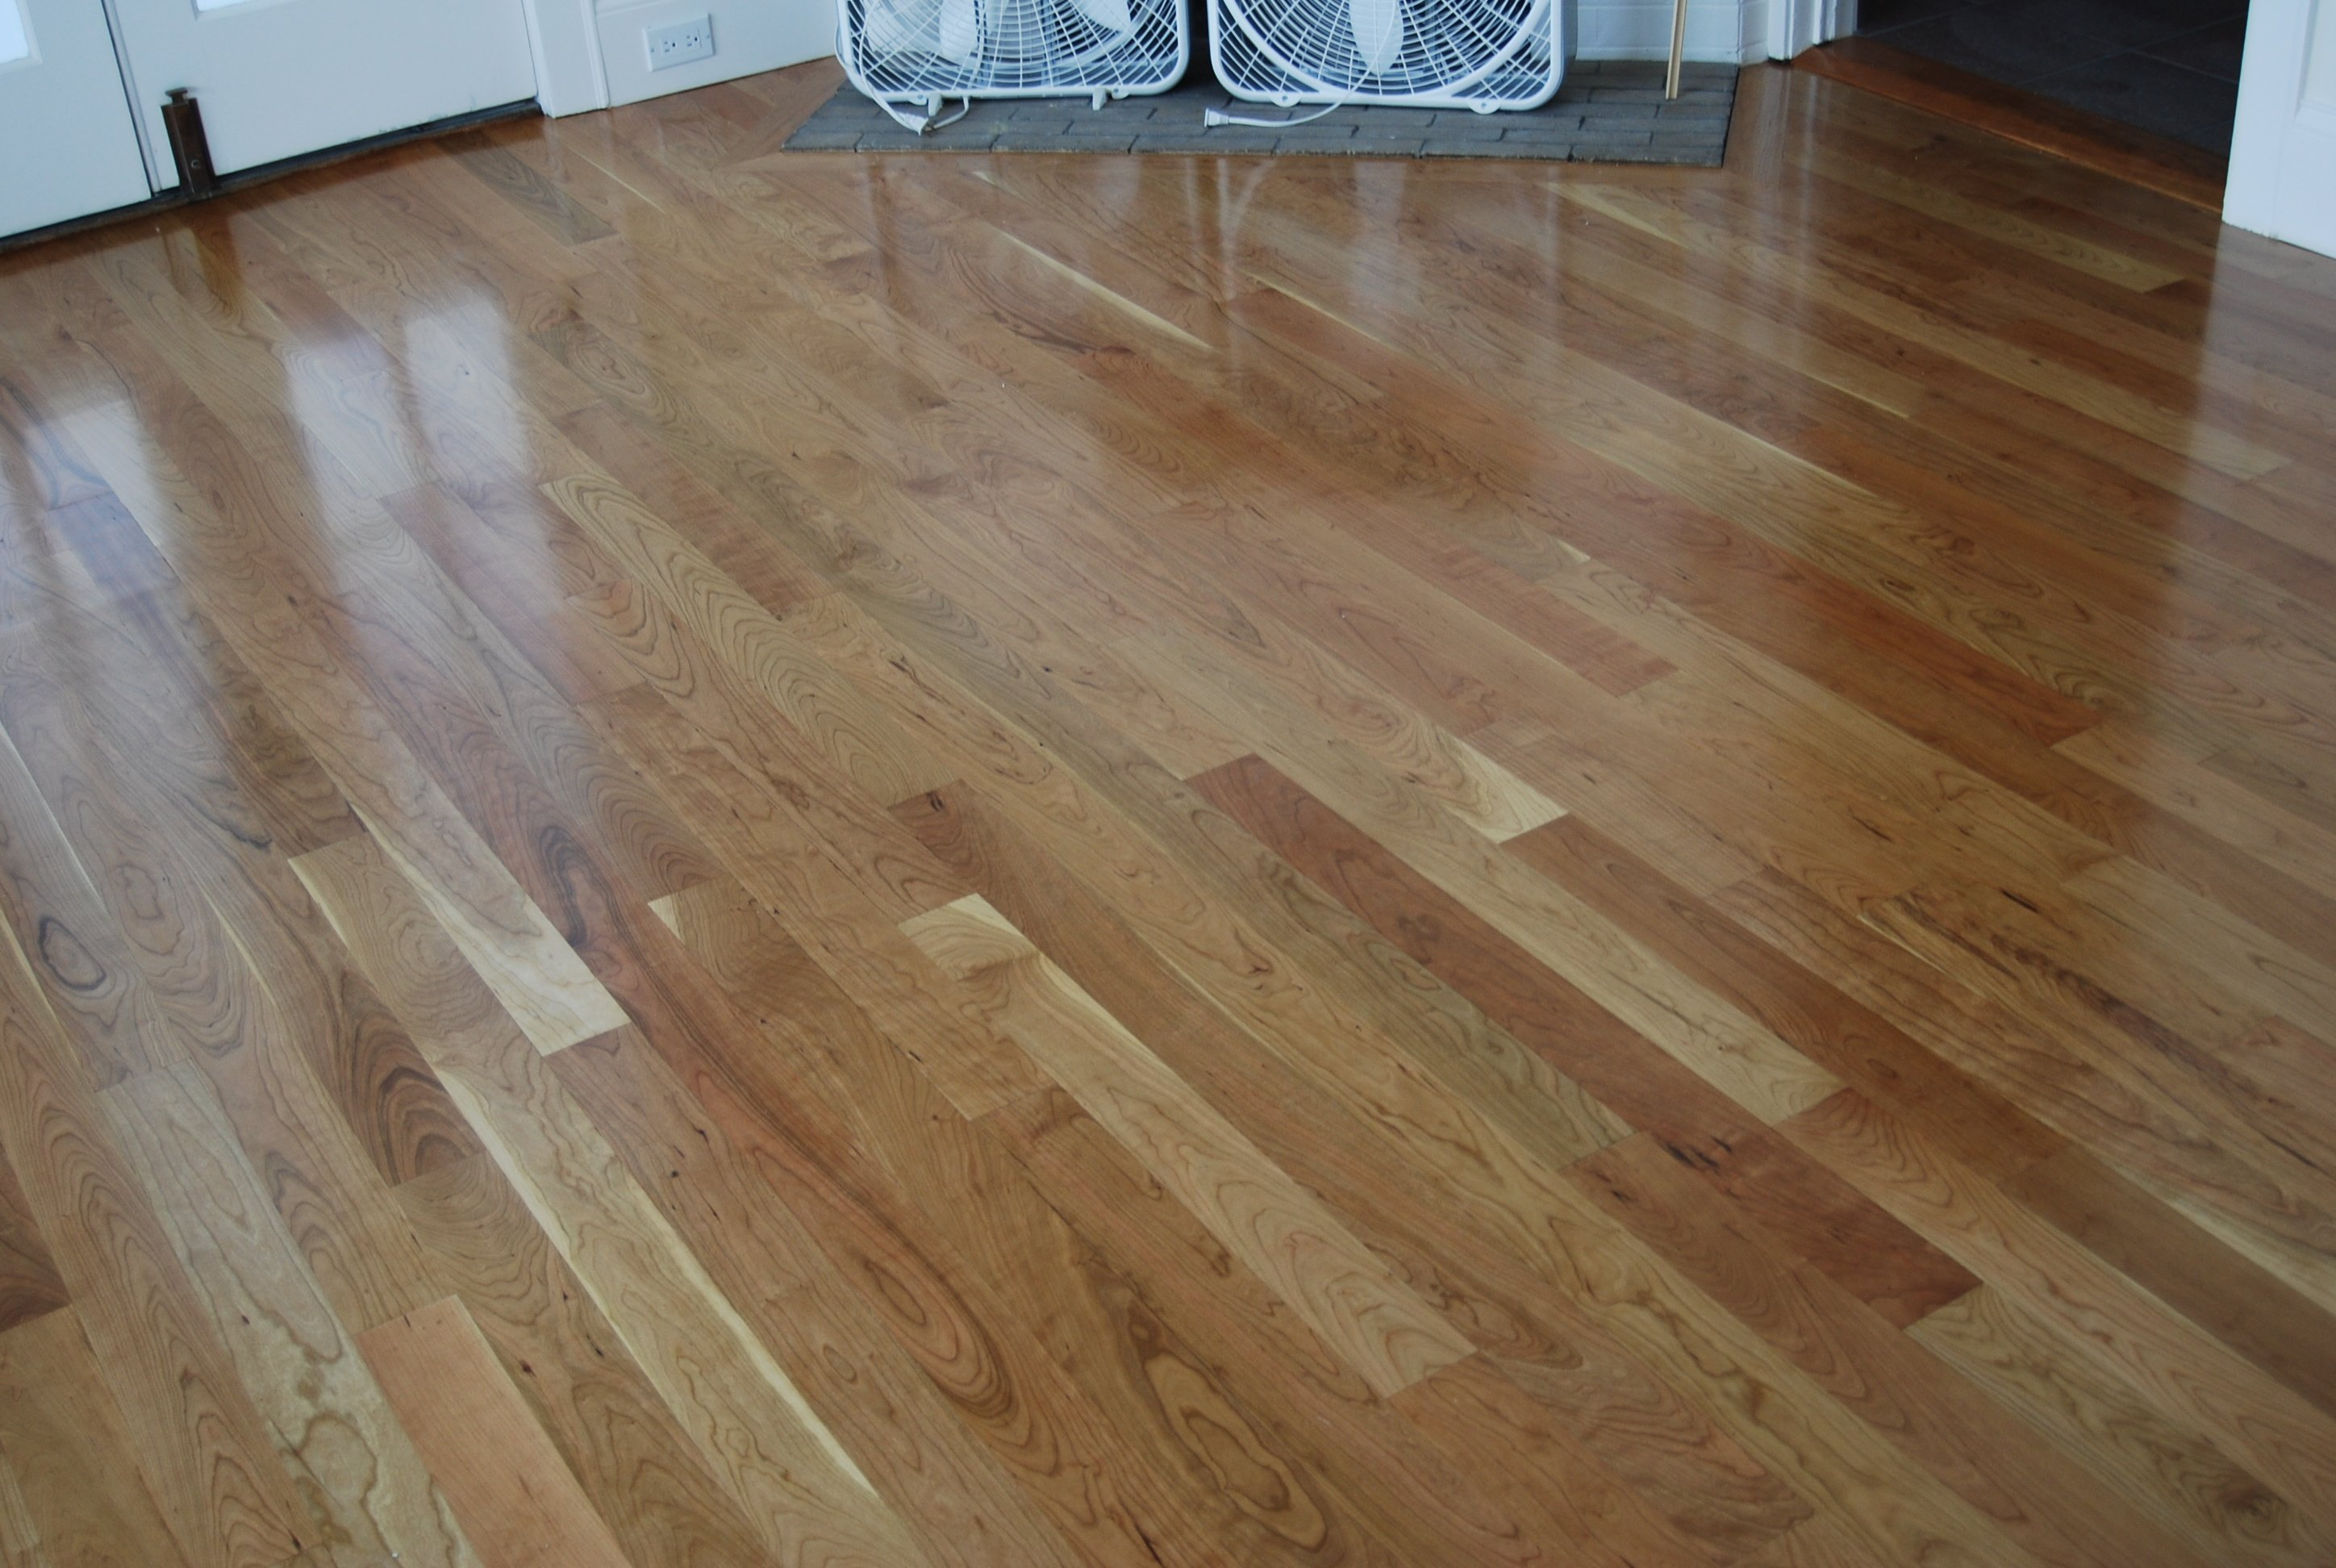 pros design flooring walnut american hardwood floor wood natural warm hardwoods cons and